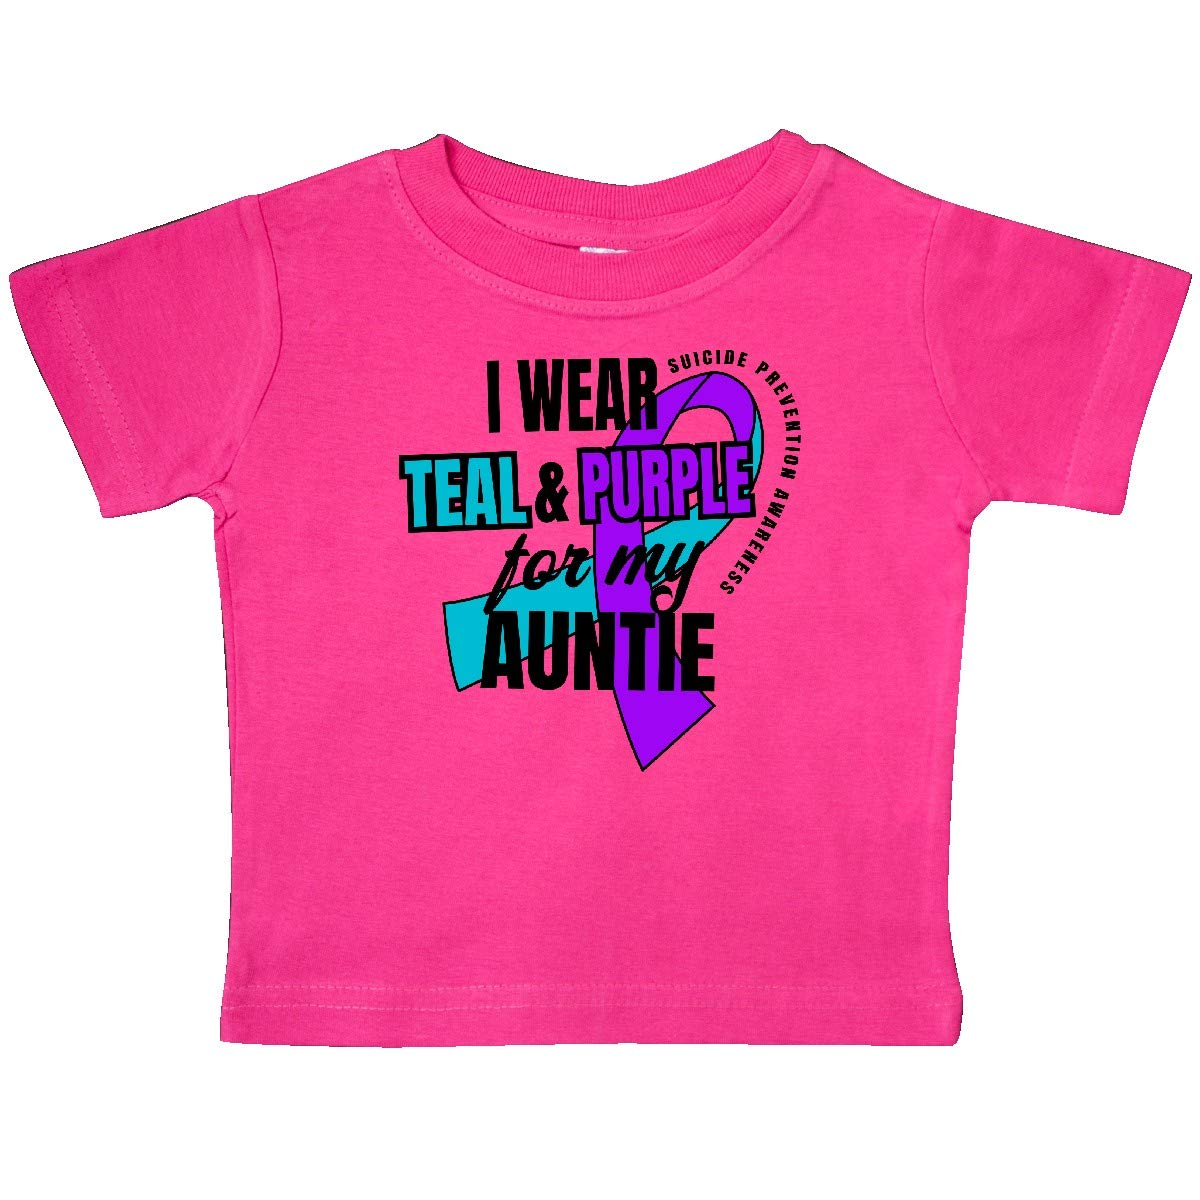 inktastic Suicide Prevention I Wear Teal and Purple for My Auntie Baby T-Shirt